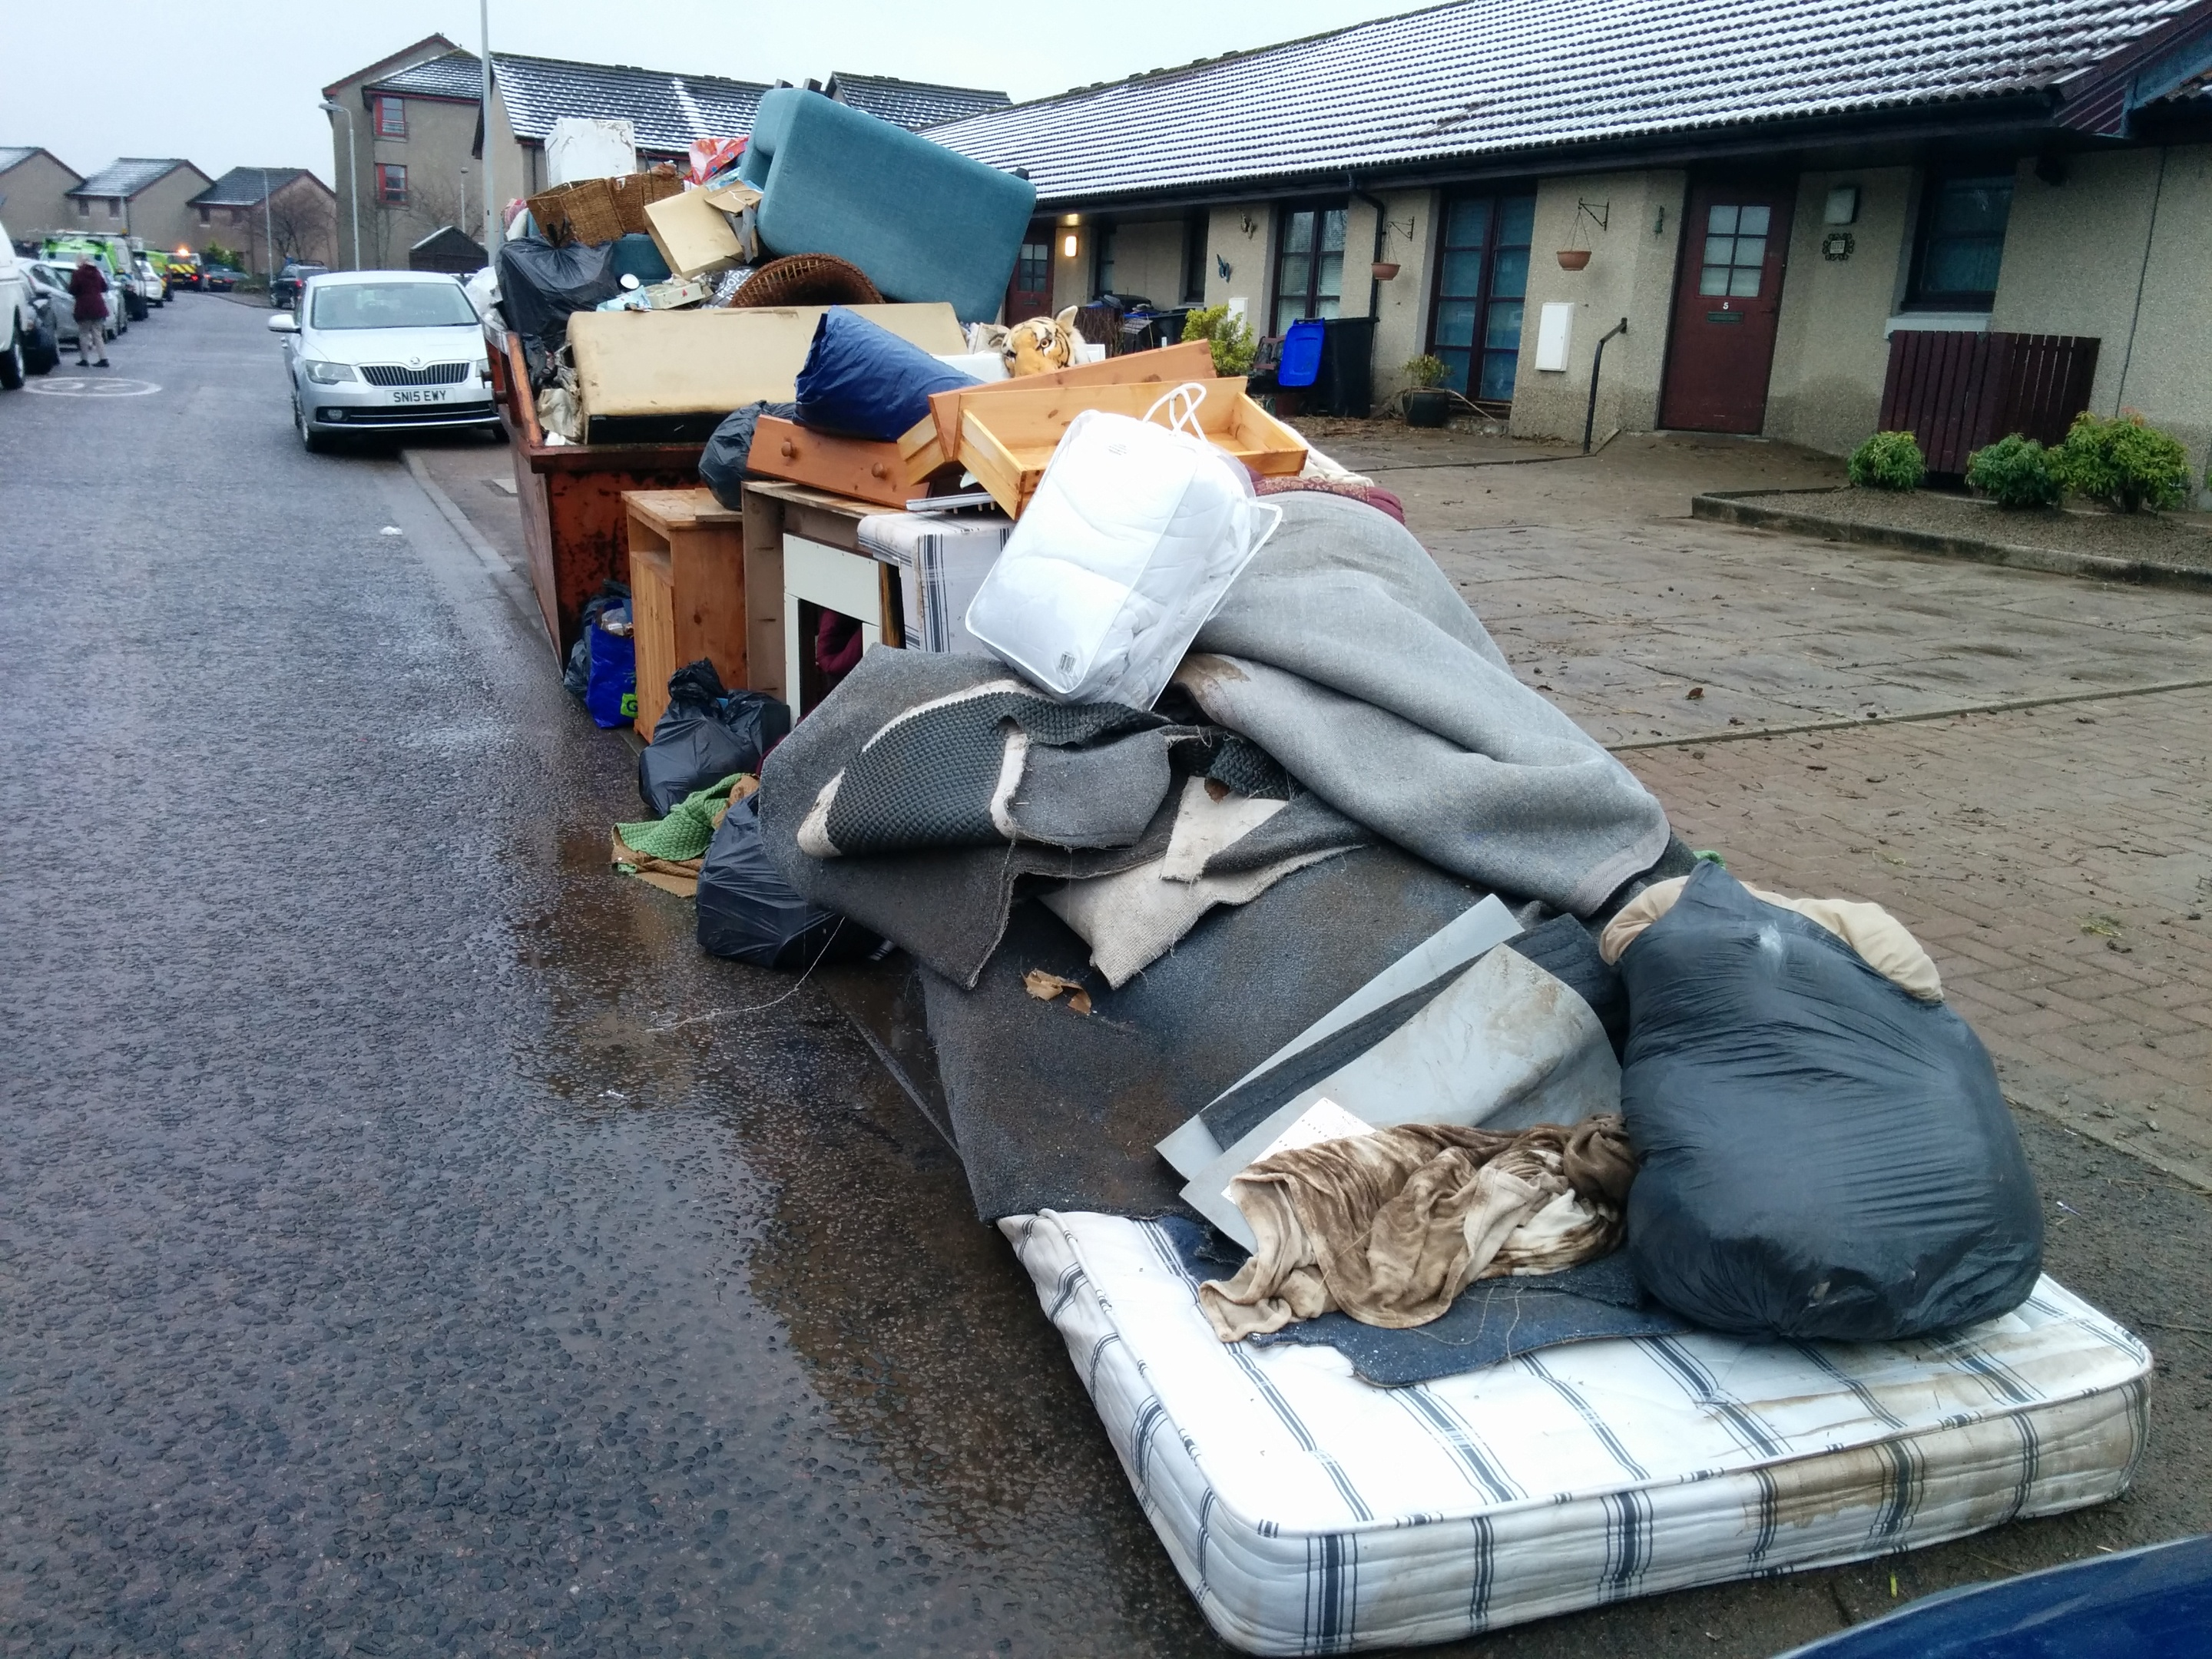 Some of the sodden belongings on the street in Port Elphinstone